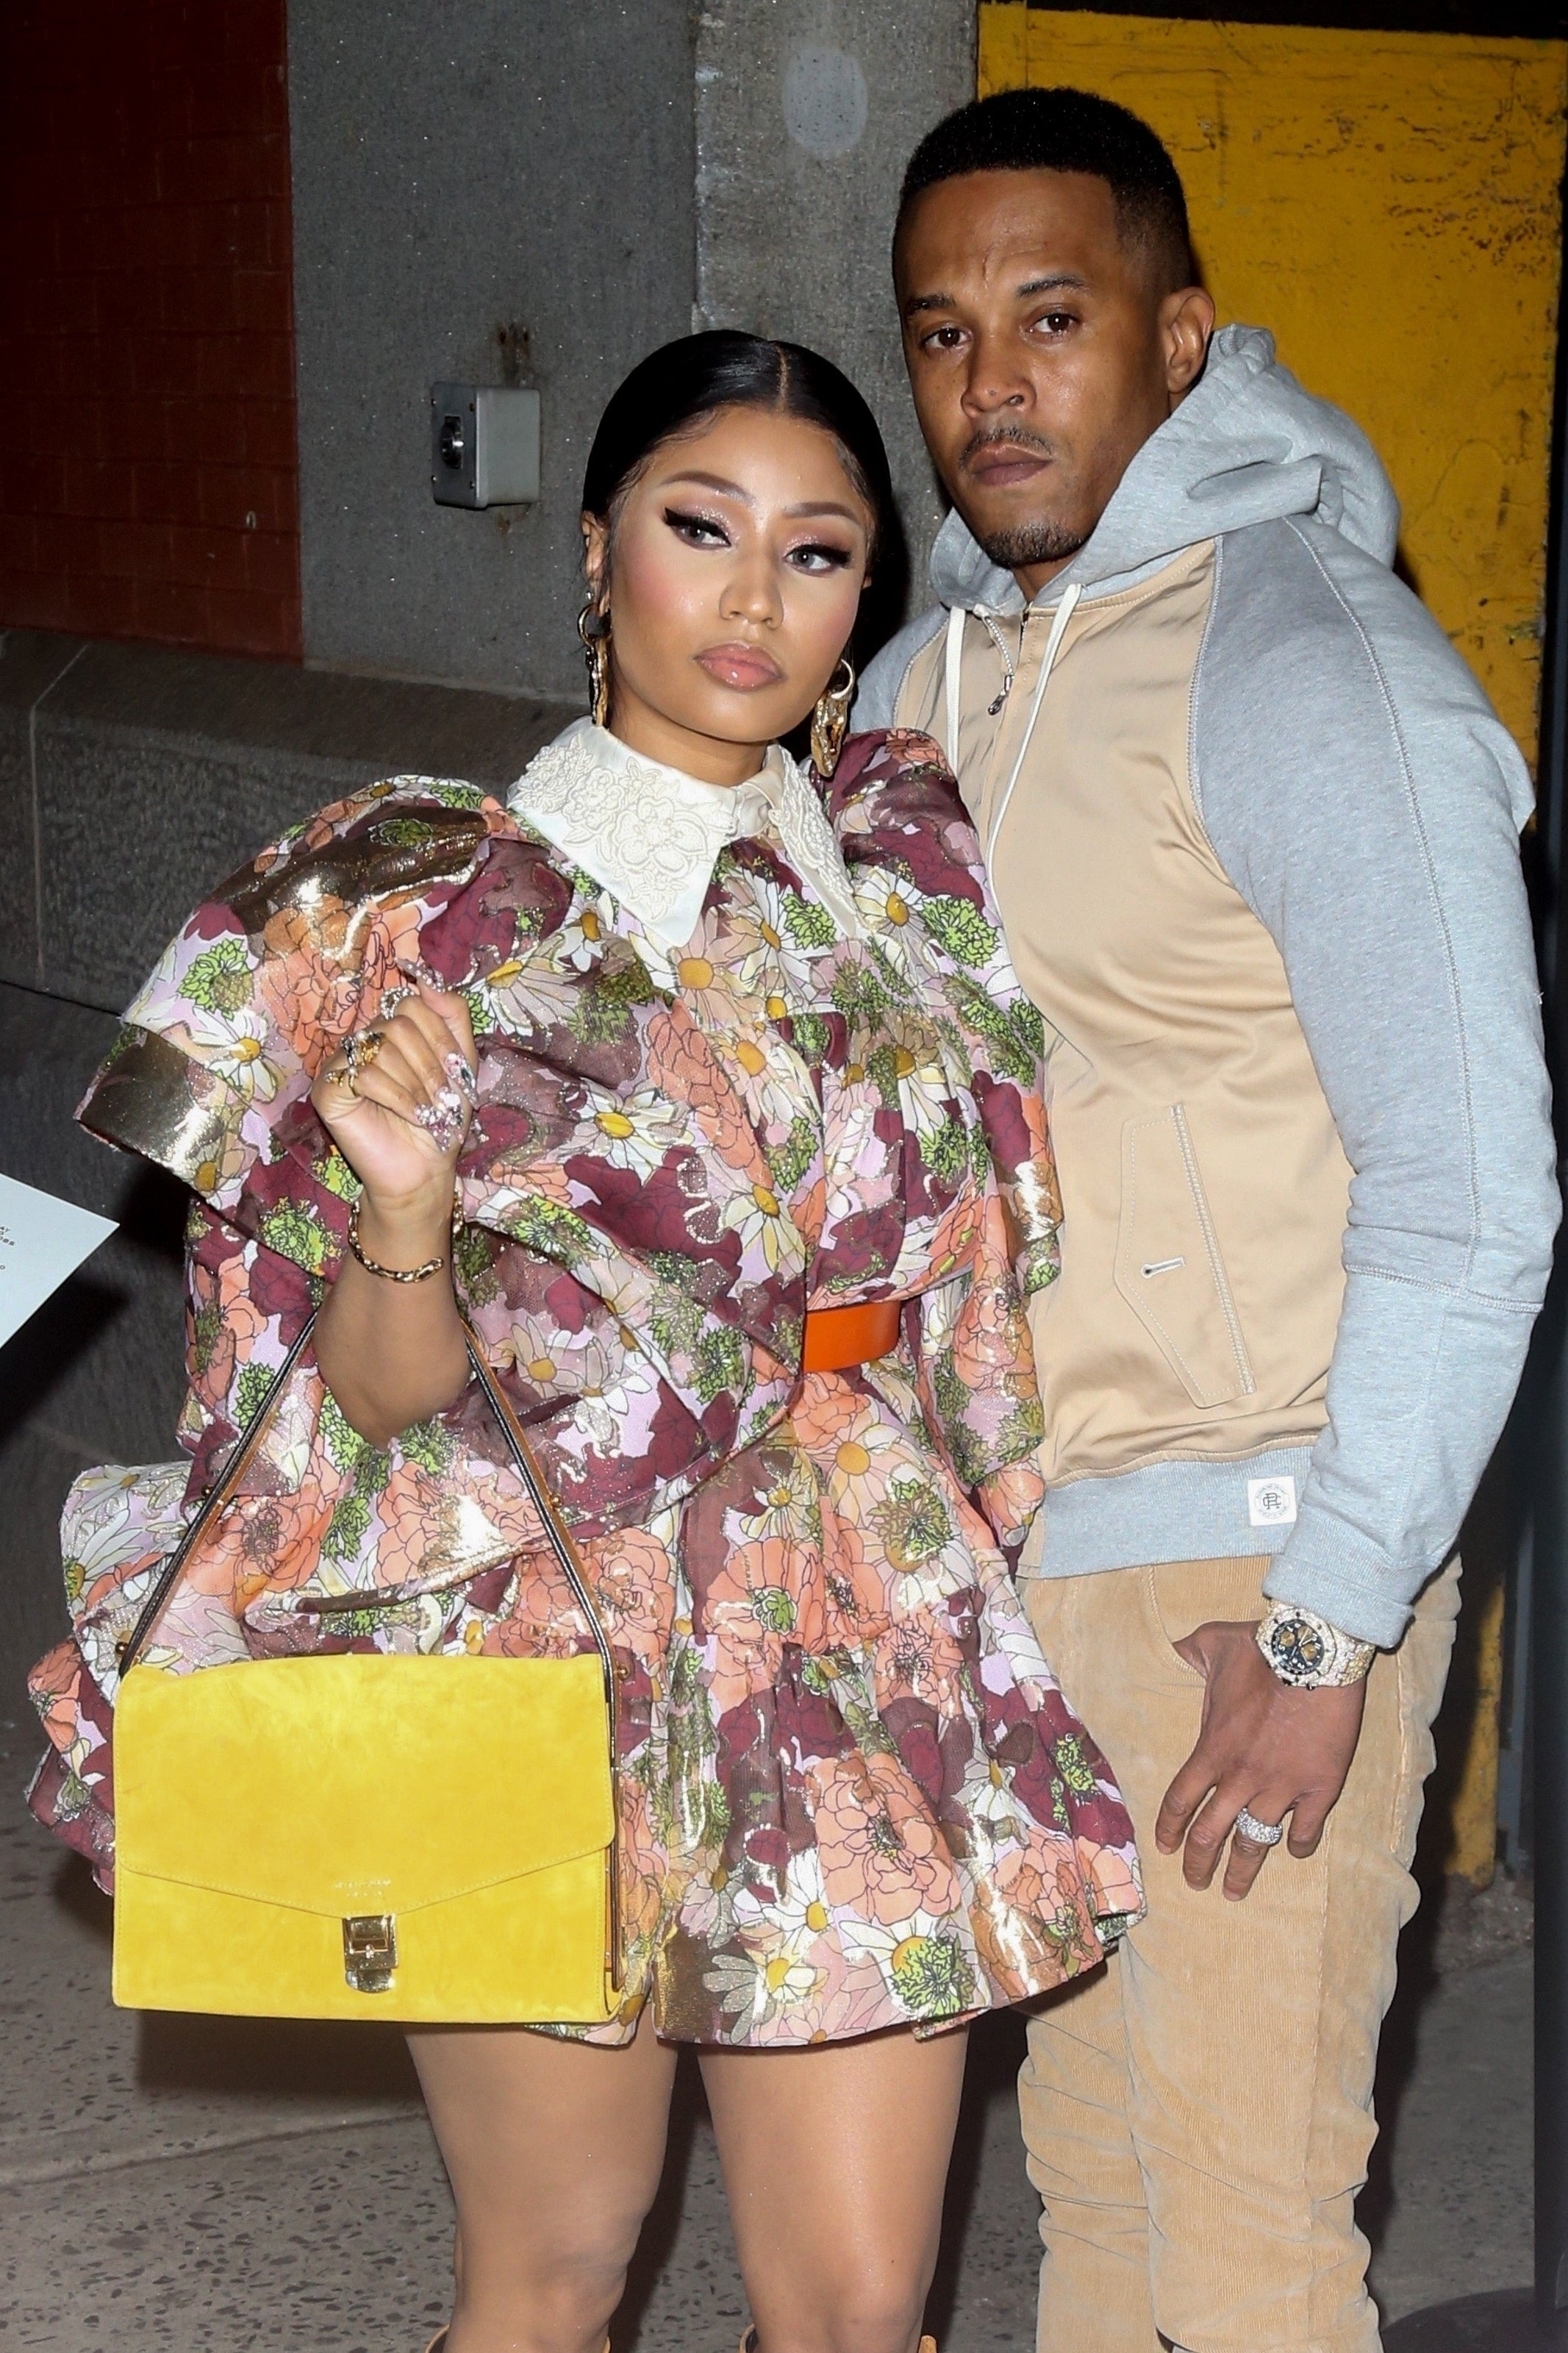 Queen Of Wigs Nicki Minaj confirms she has welcomed a baby boy